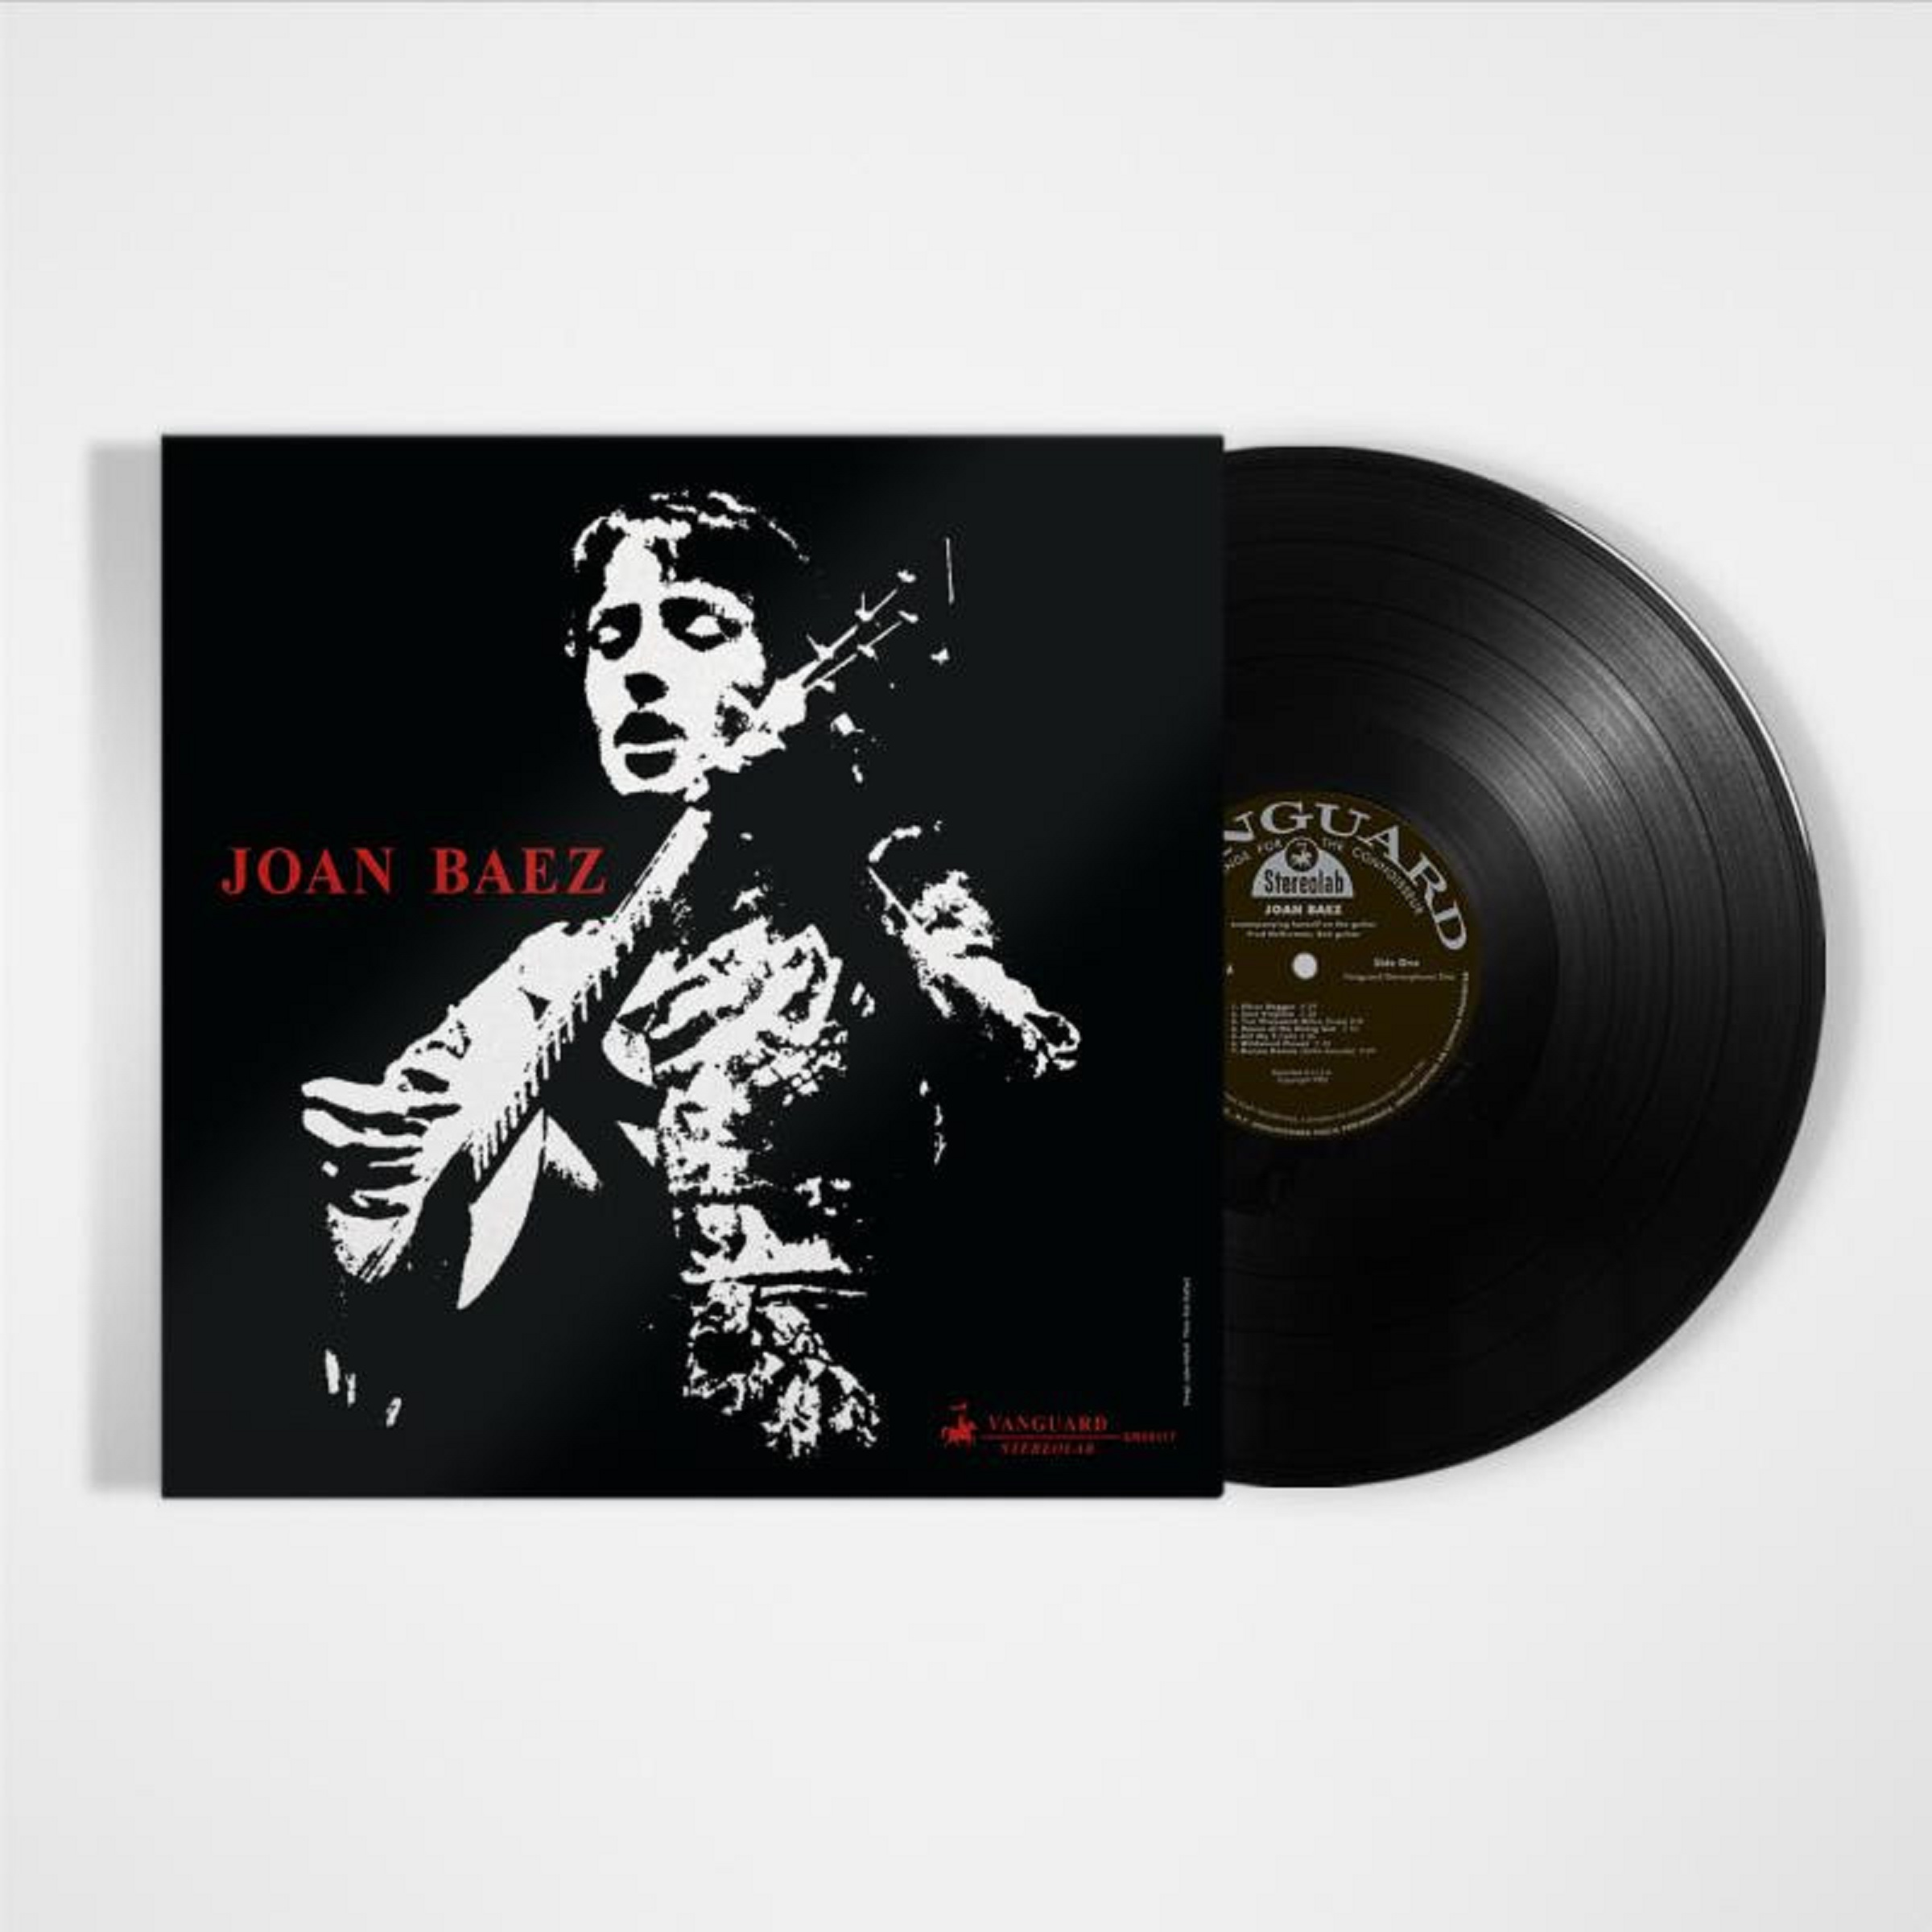 Craft Recordings to Re-release Joan Baez's Self-titled Debut on Vinyl